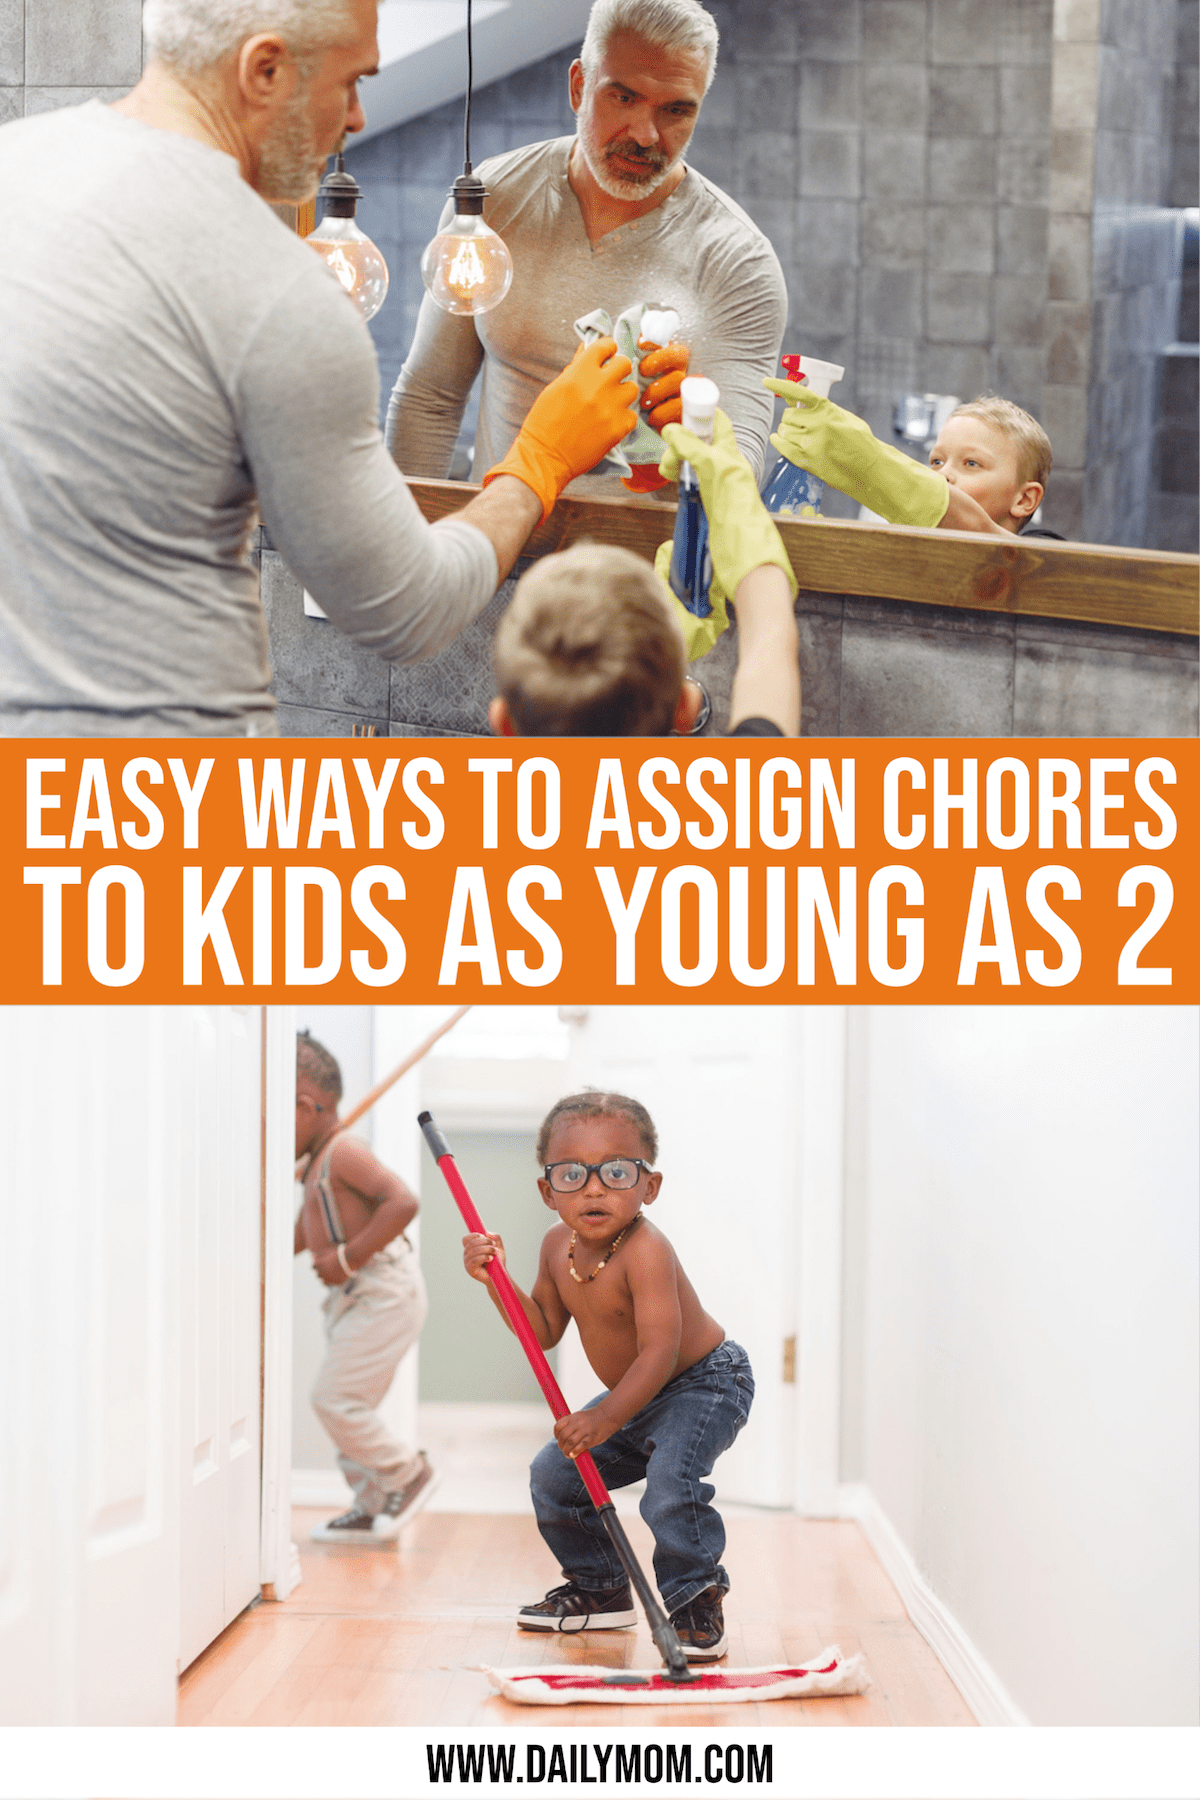 Daily-mom-parent-portal-Chore List By Age: Easy Ways To Assign Family Chores To Kids As Young As 2!